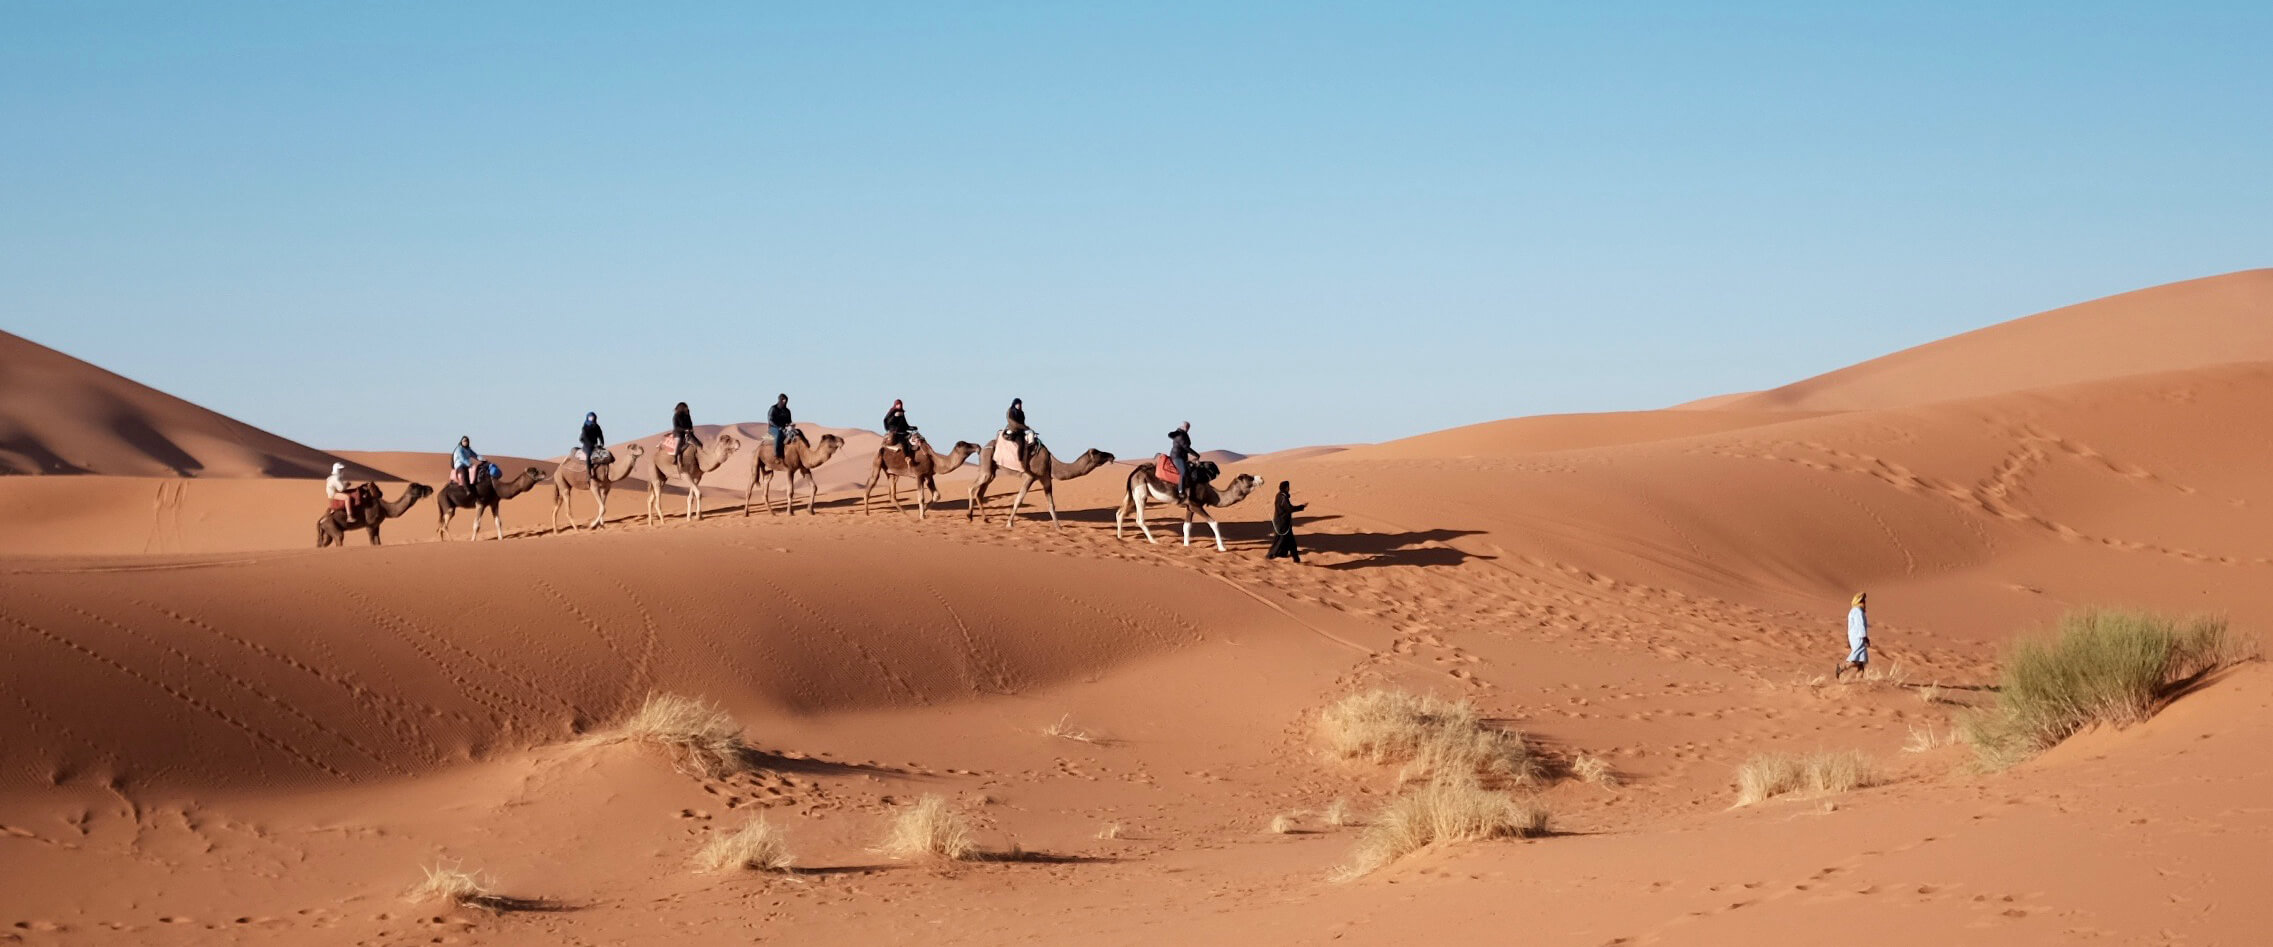 Arabs riding camels through the desert